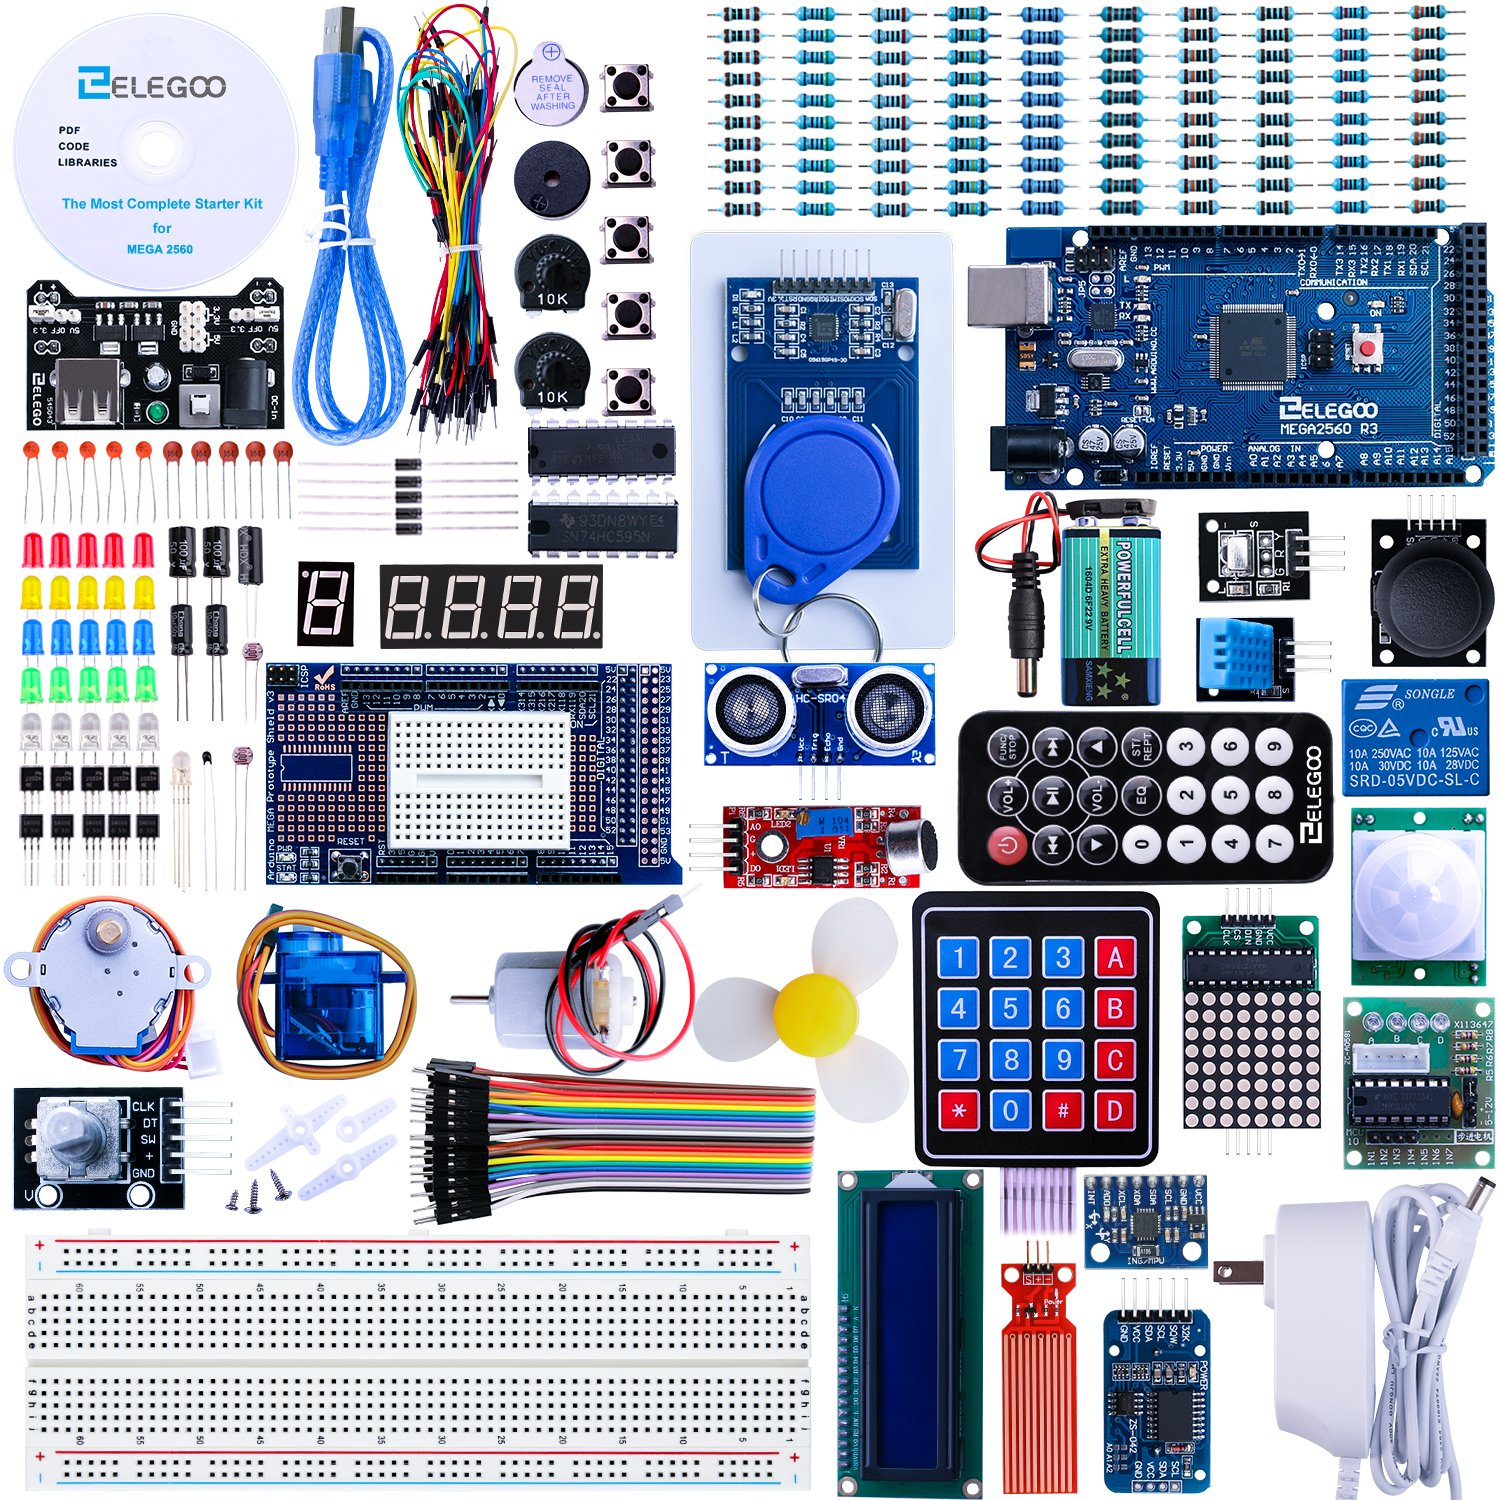 ELEGOO Mega 2560 Project The Most Complete Ultimate Starter Kit w/Tutorial Compatible with Arduino IDE by ELEGOO